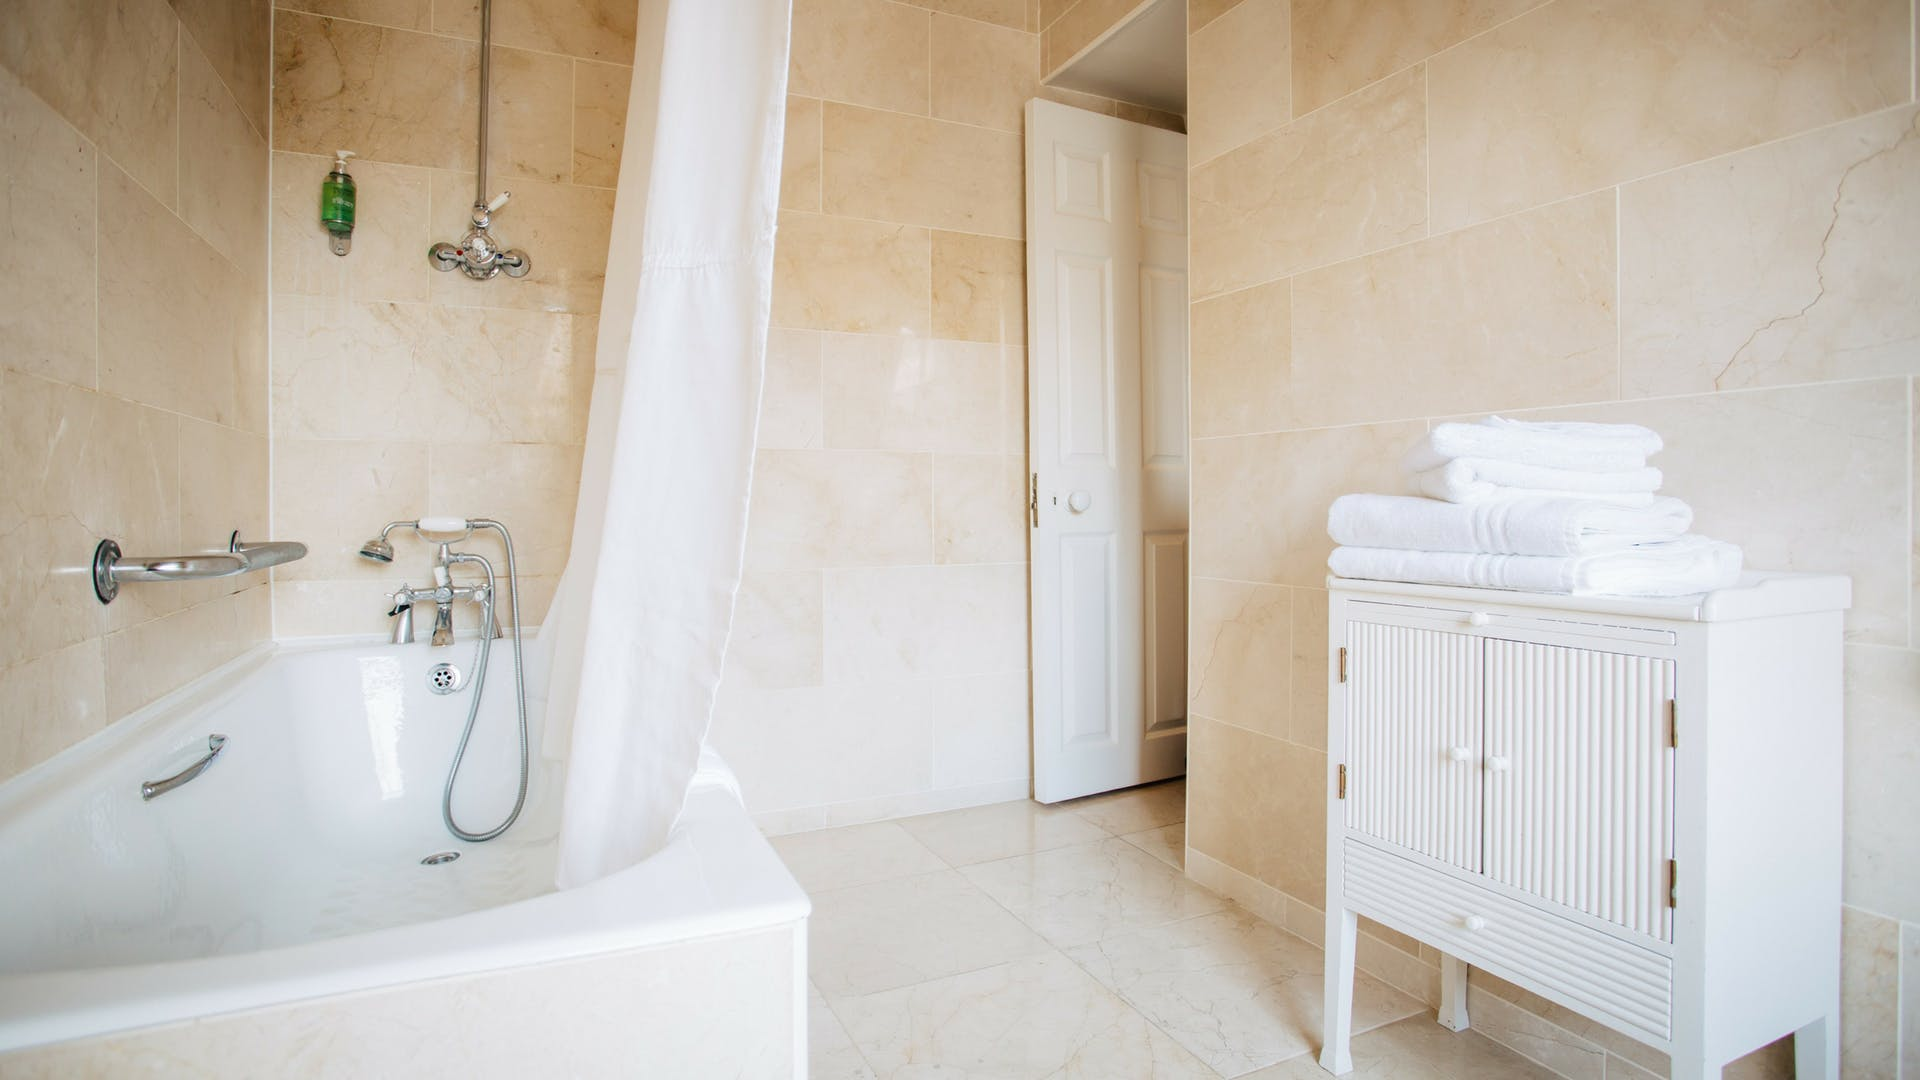 Bathroom in the Executive Suite at Gleesons Restaurant & Rooms, Roscommon